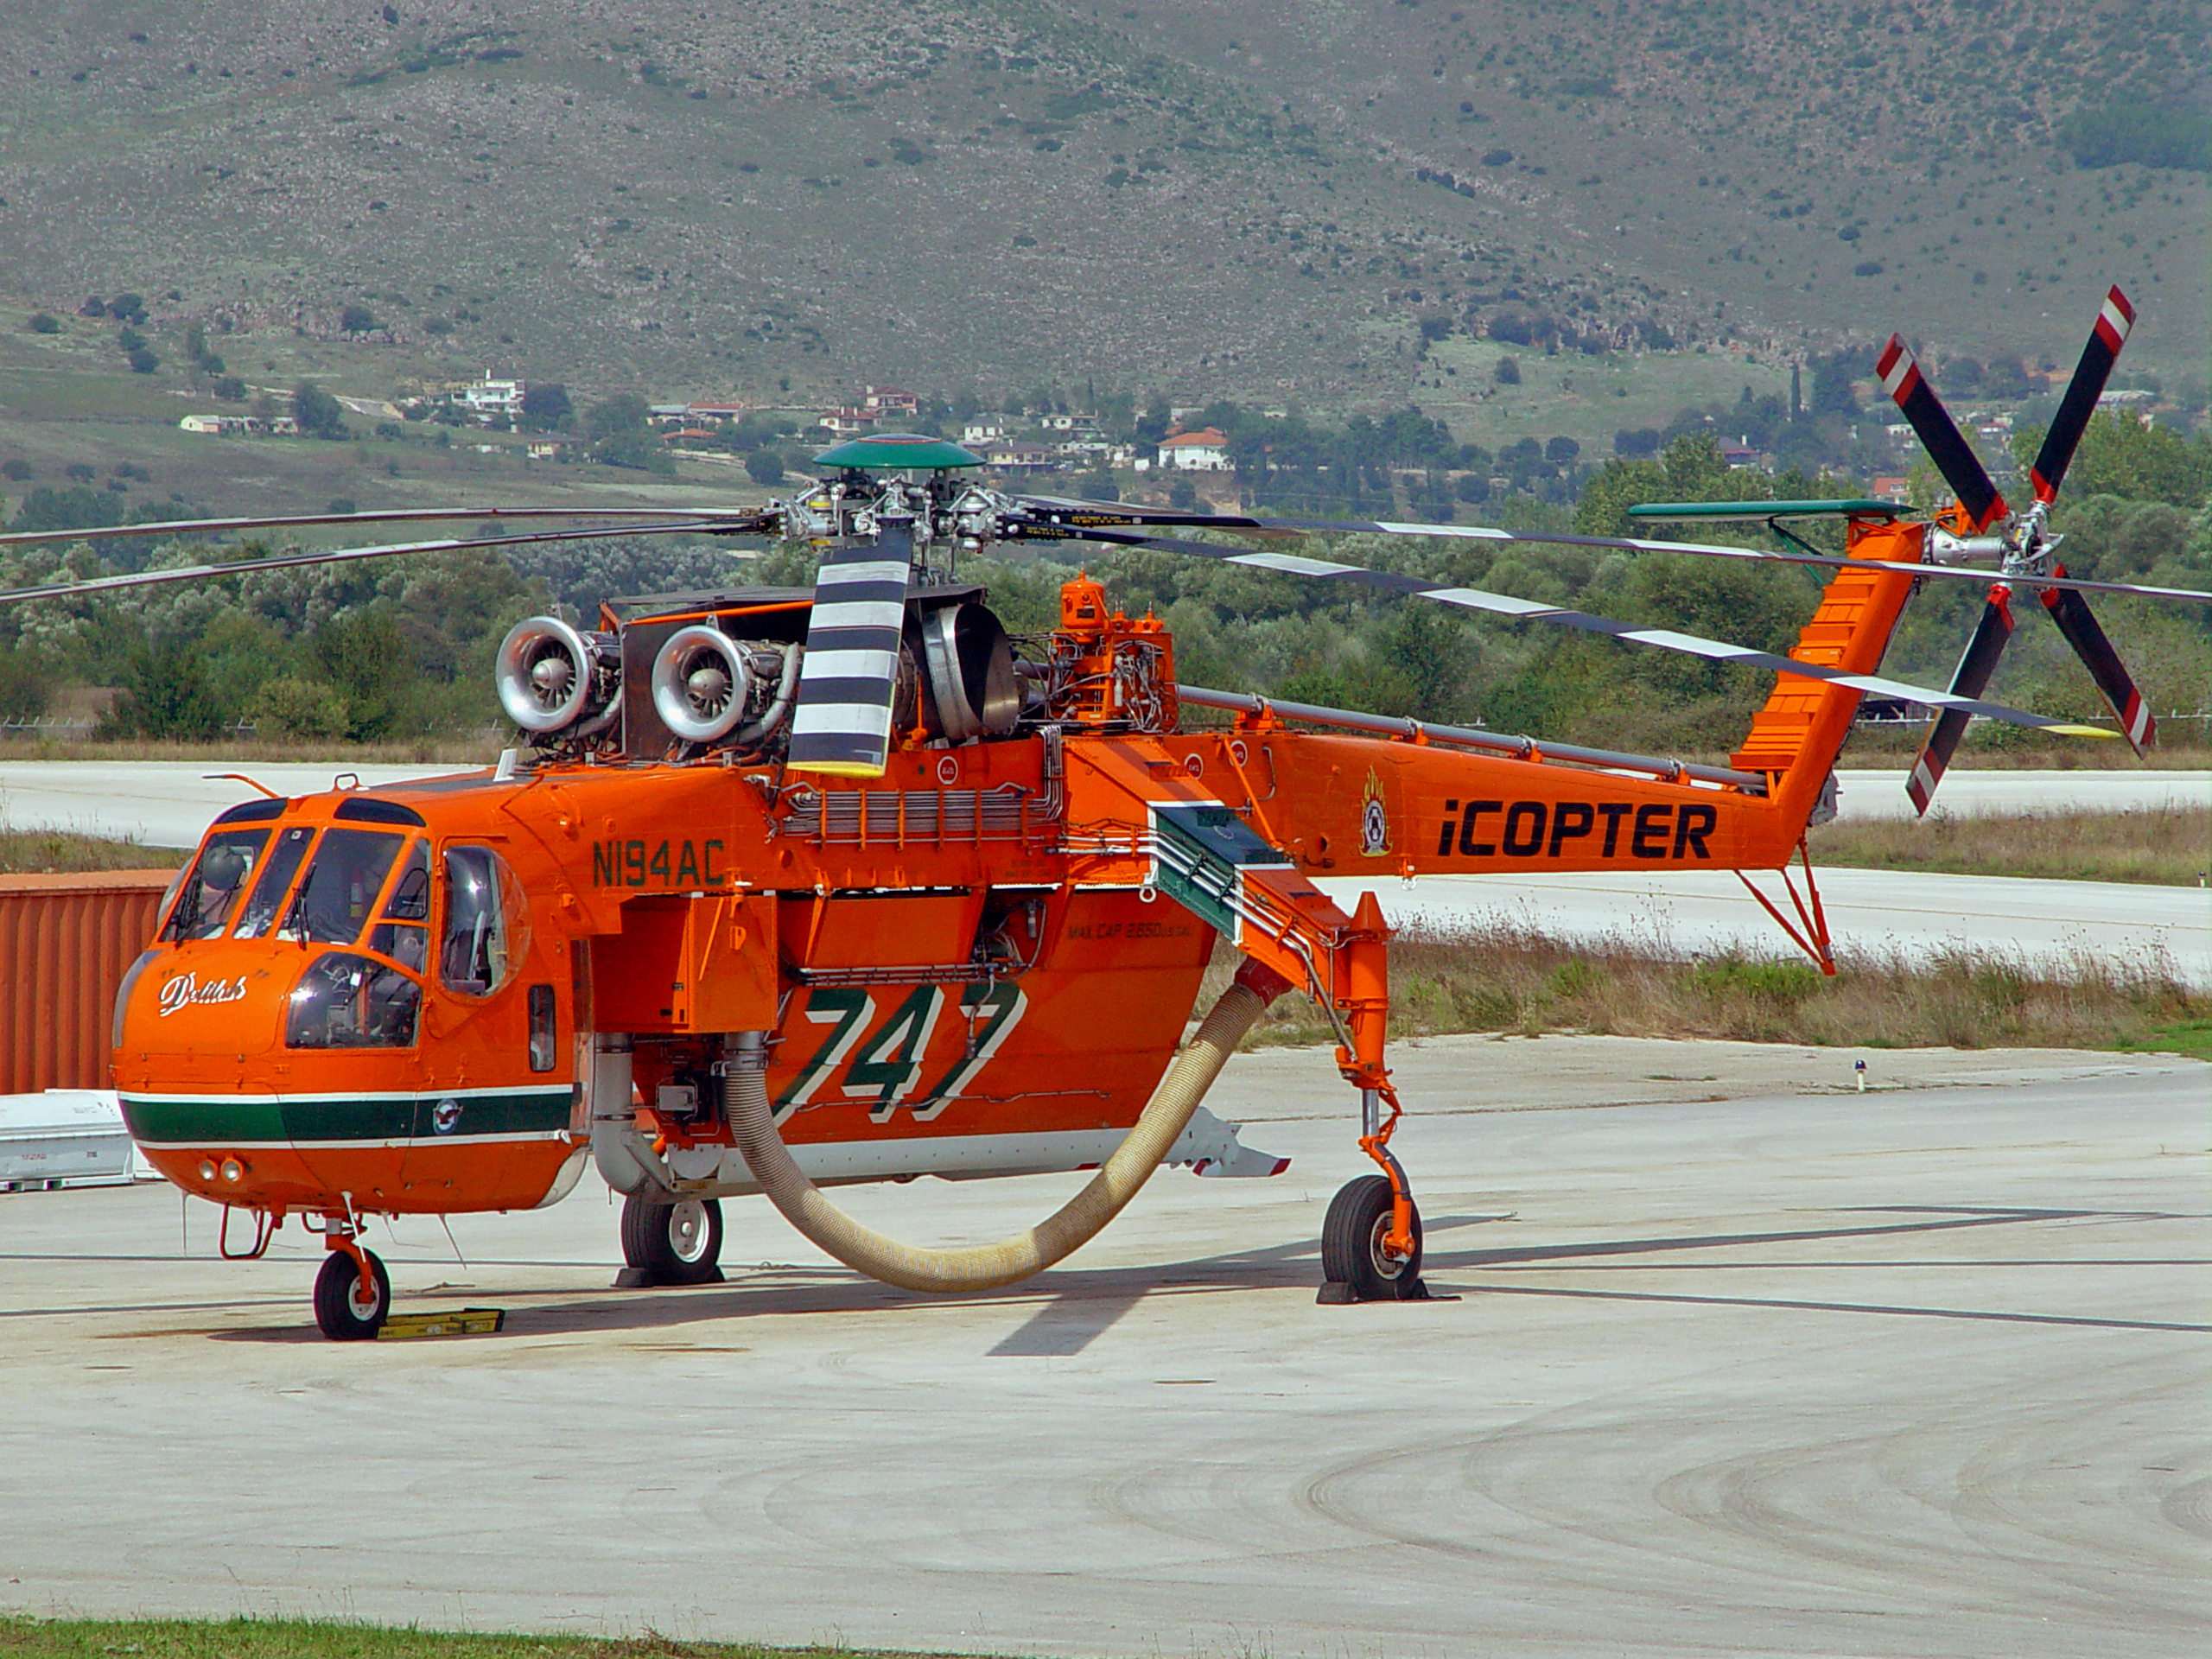 sikorsky helicopter for sale with File S 64 Aircrane on File Chinook hc2 za682 arp also File Eurocopter Tiger 2 also Fvl design moreover 132152570289508765 besides Watch.